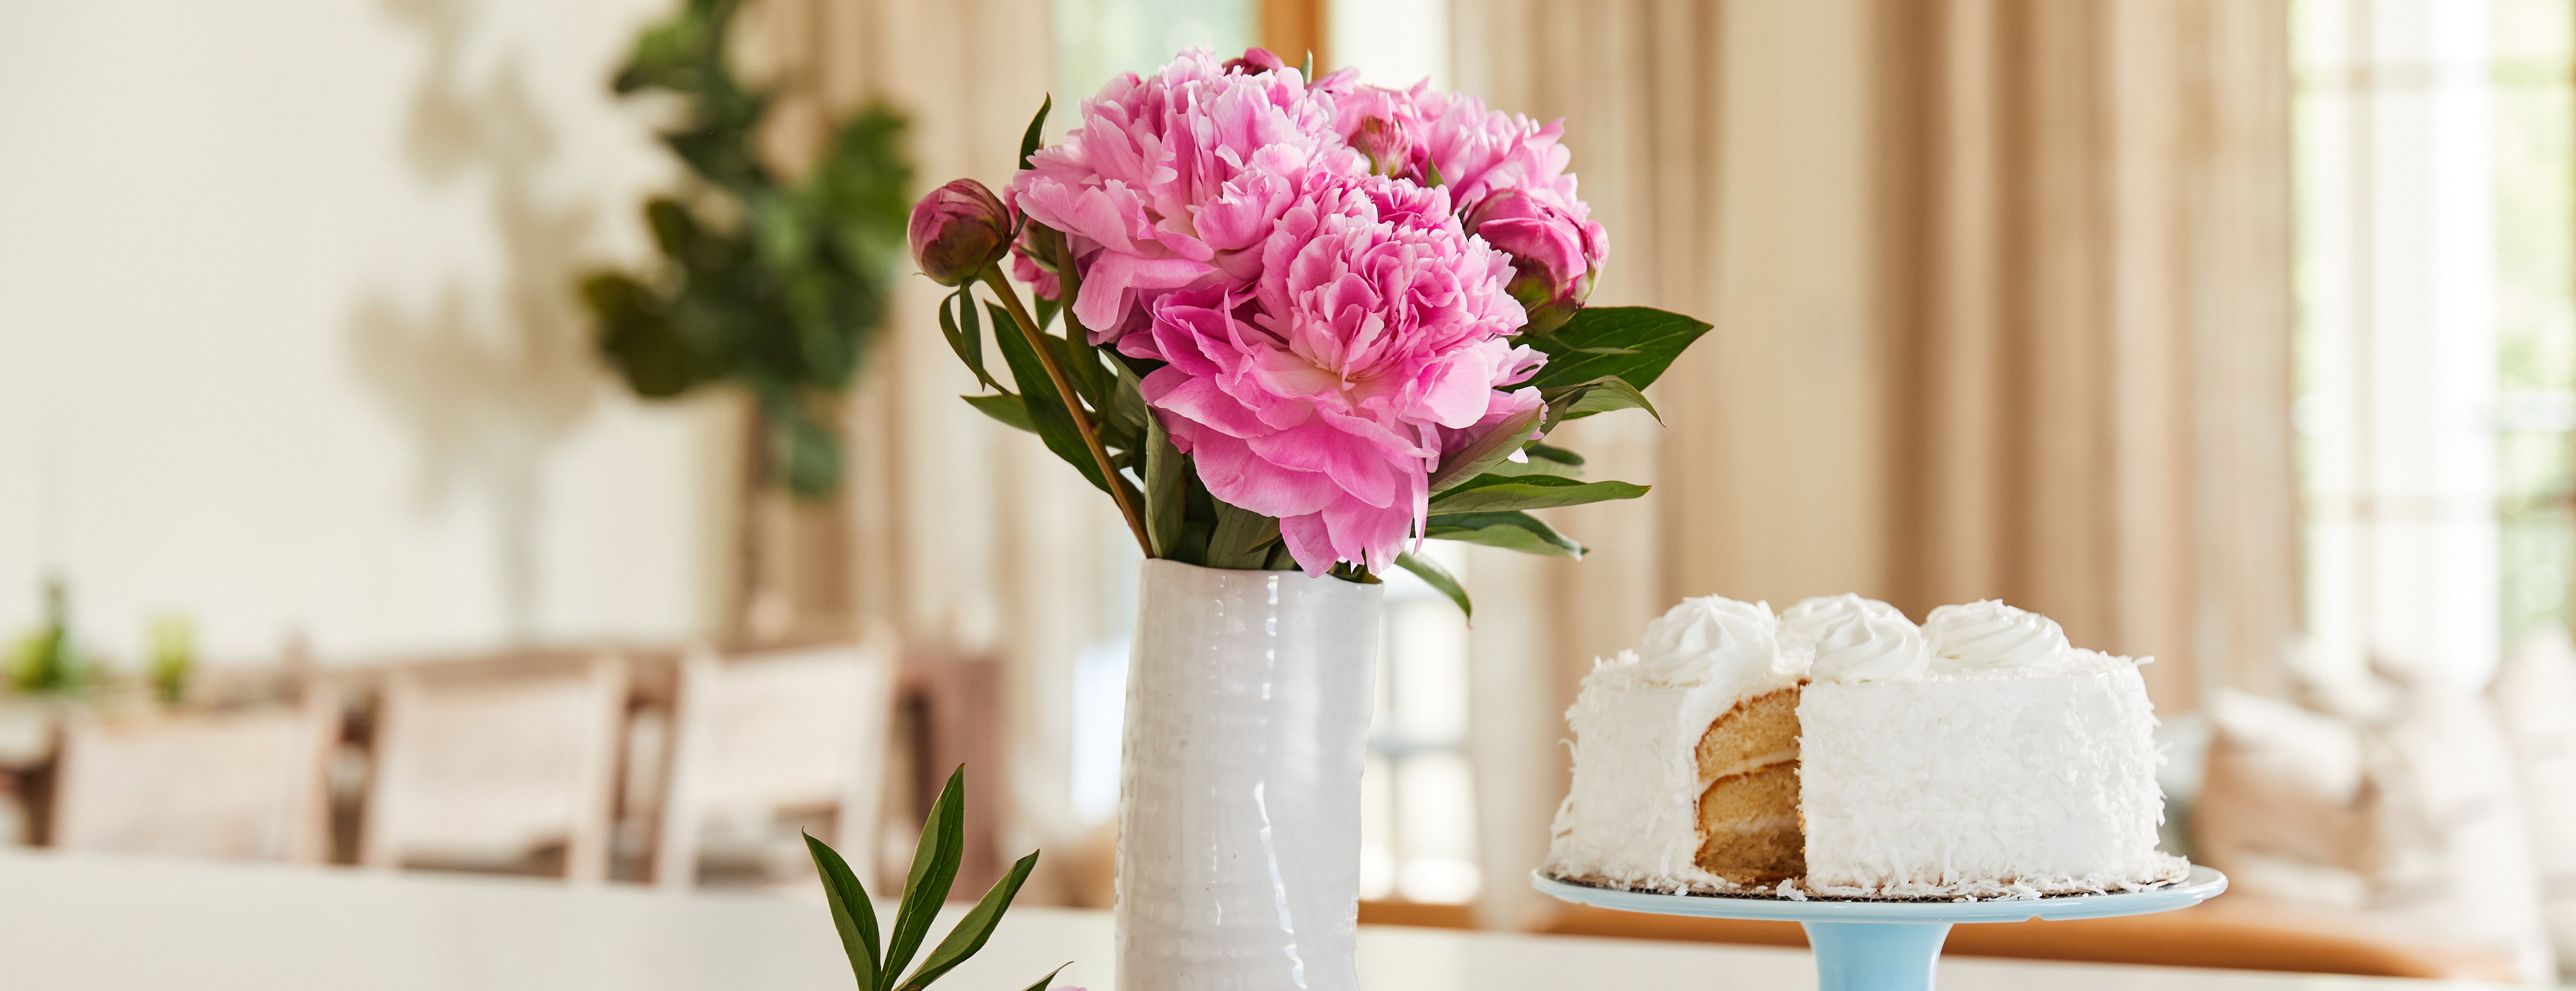 Bouquet of pink flowers in white vase with white birthday cake